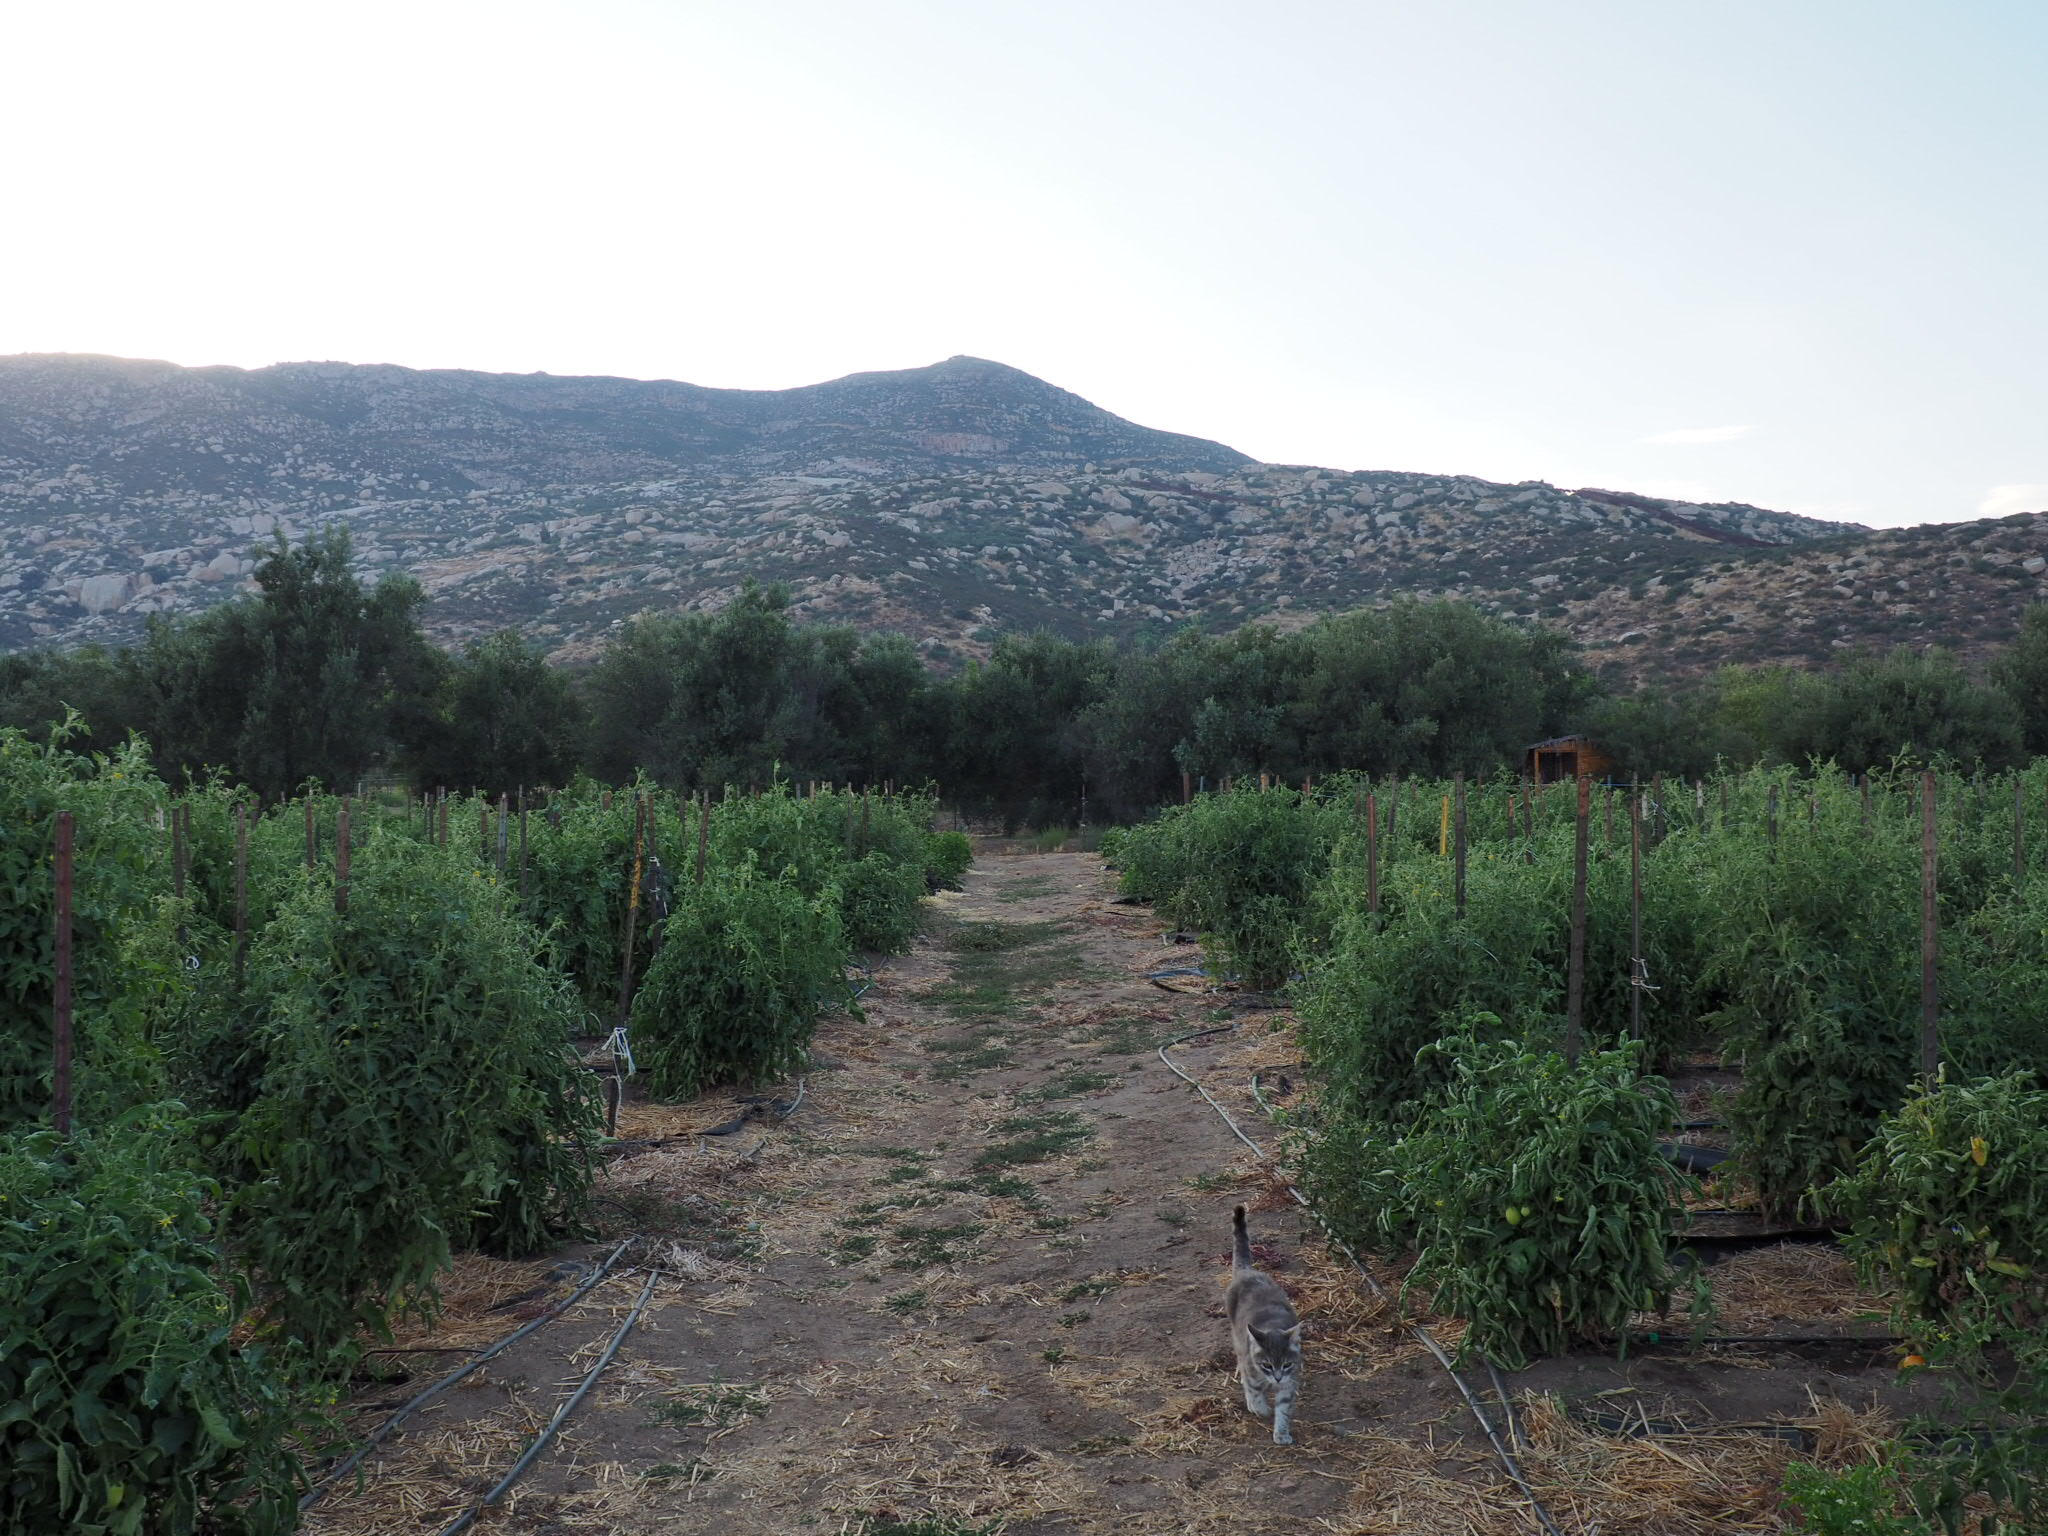 You can't see here because of the light, but on that ridge just south of the peak is the border fence. This viewpoint is from La Cocina Que Canta's garden. Photo by Jackie Bryant.